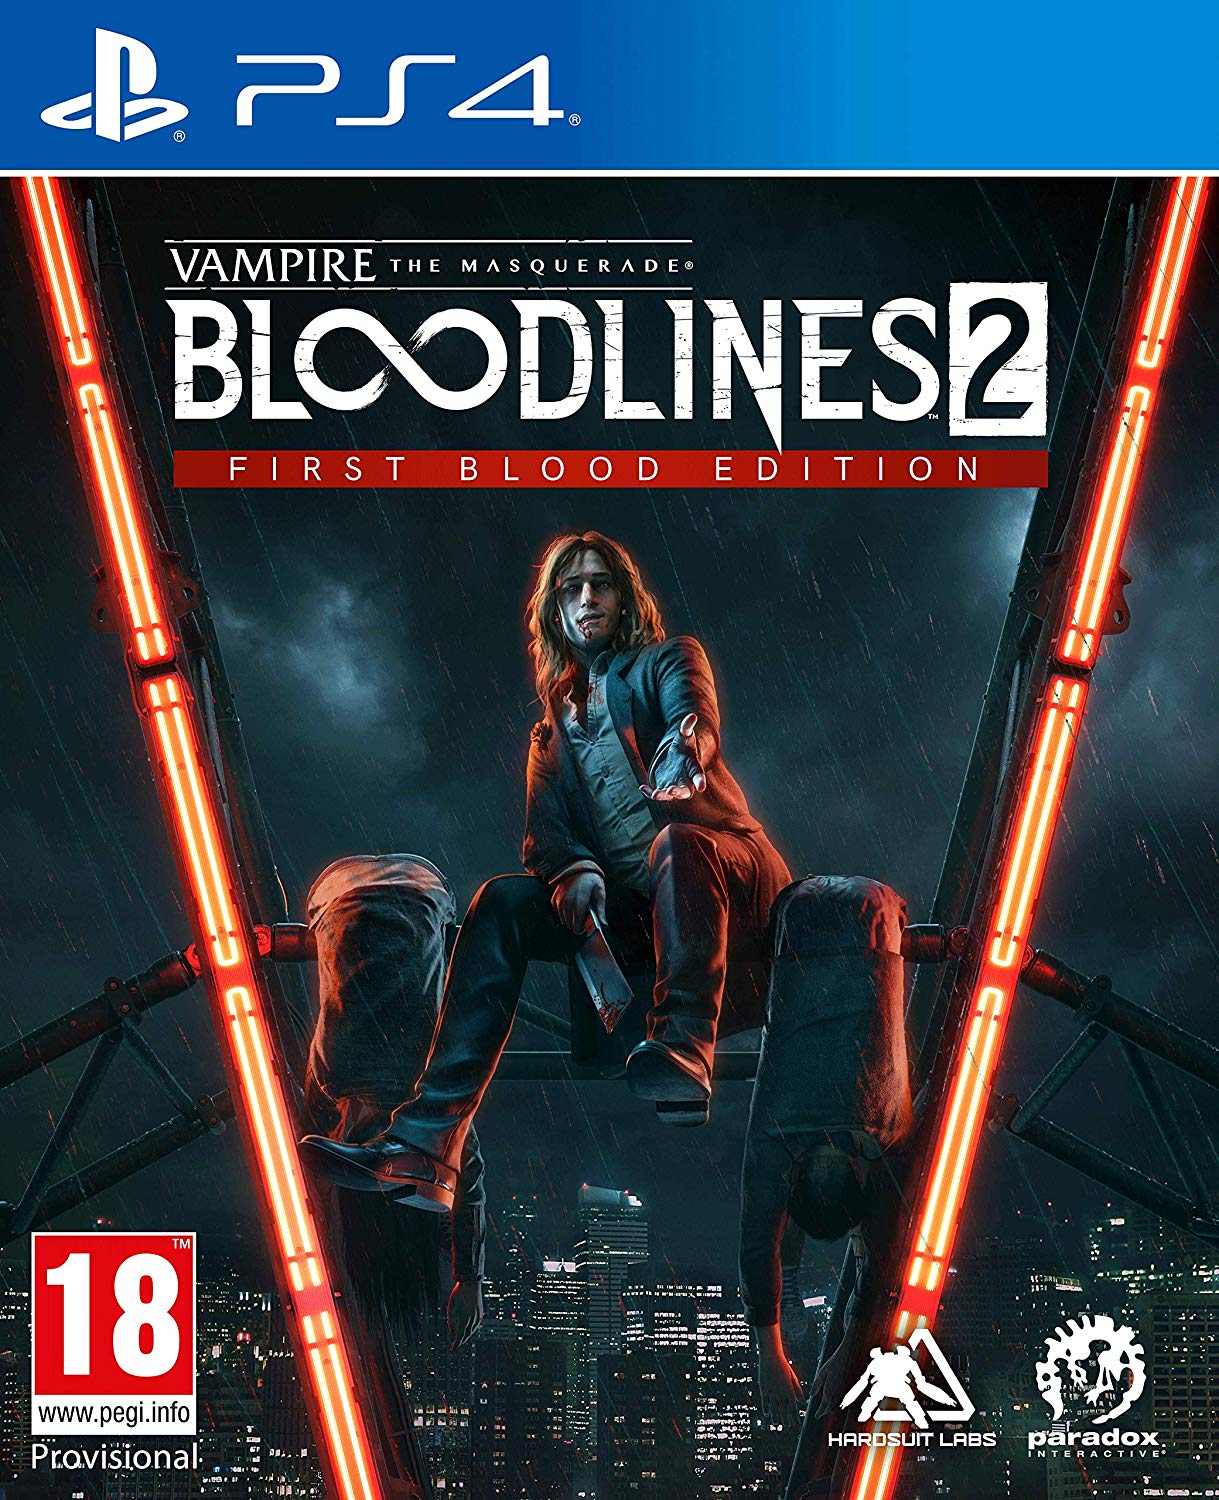 Vampire The Masquerade Bloodlines 2 First Blood Edition